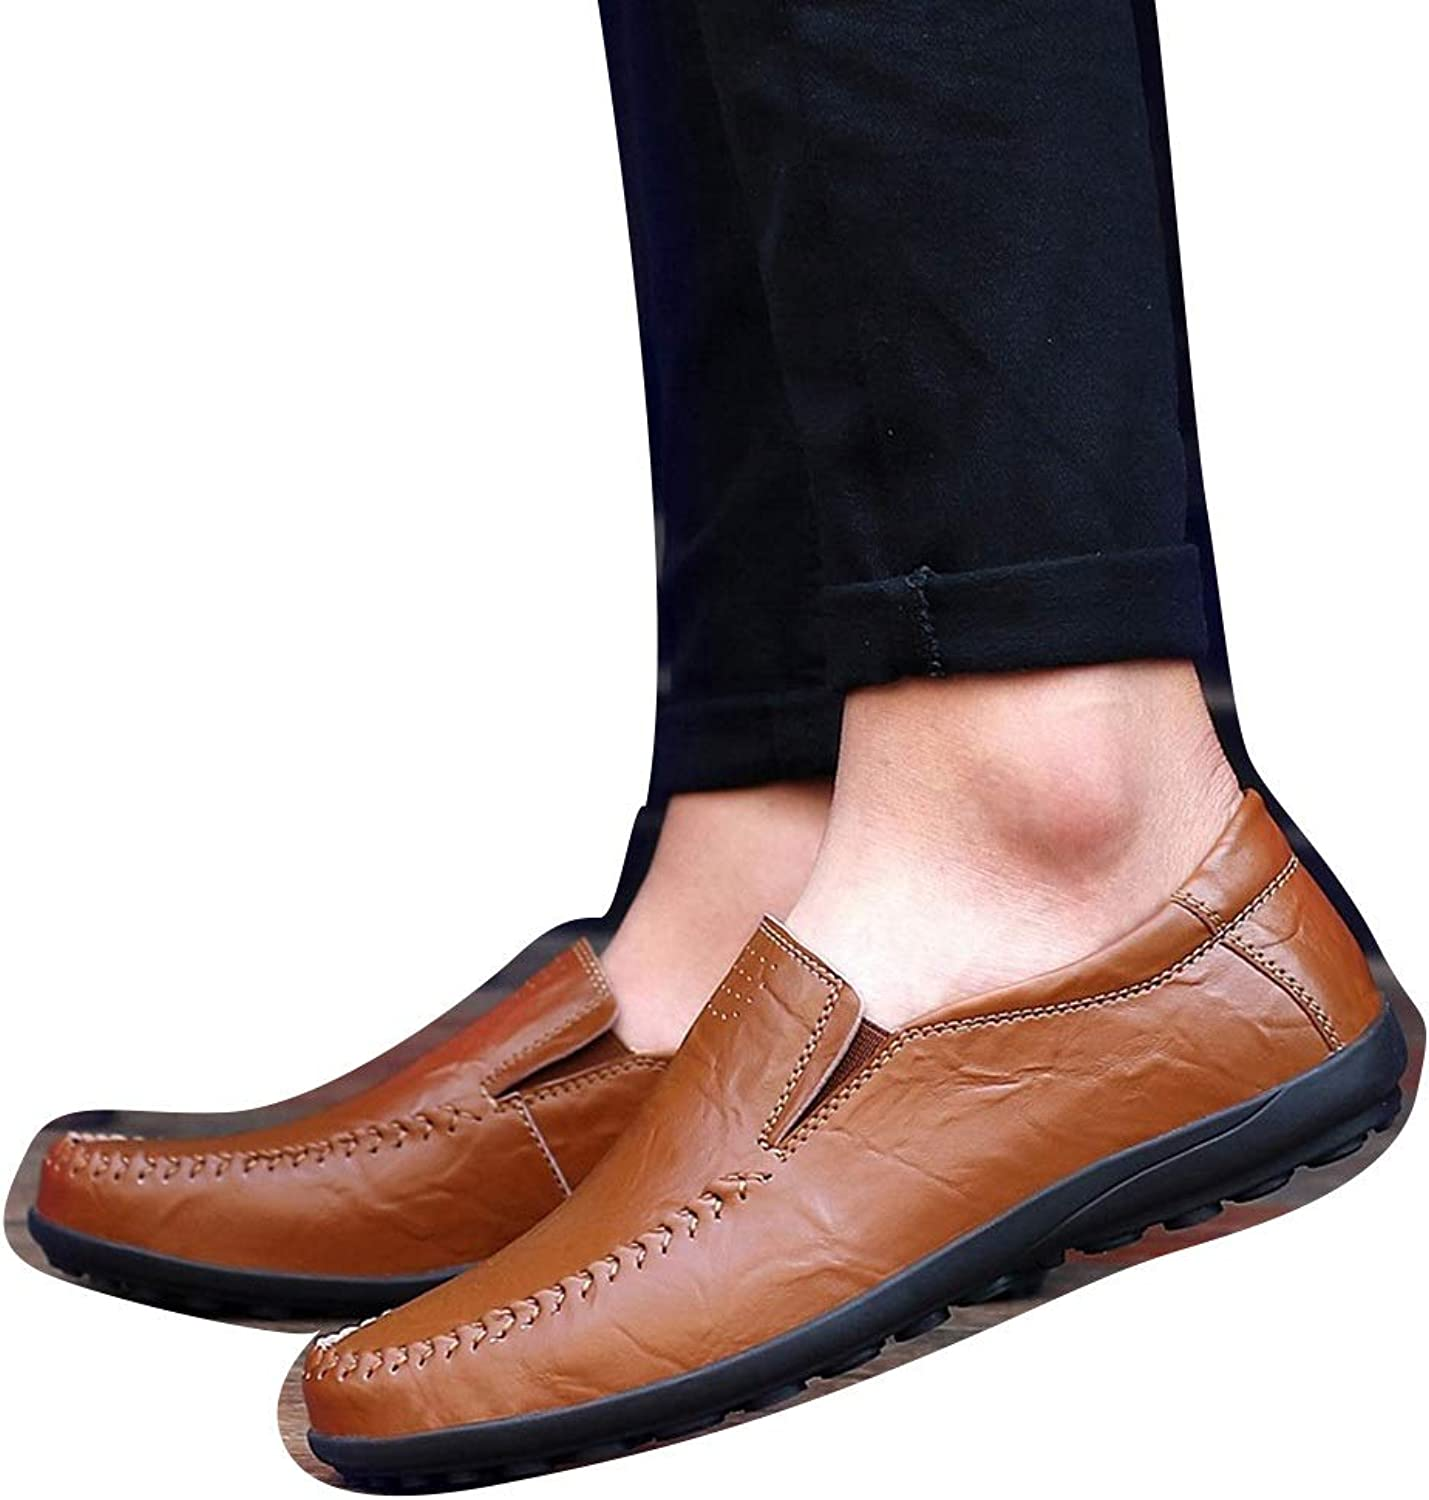 Men's Casual shoes A Pedal Leather shoes Loafers Summer Breathable Peas shoes Cricket shoes (color   Red Brown, Size   41)